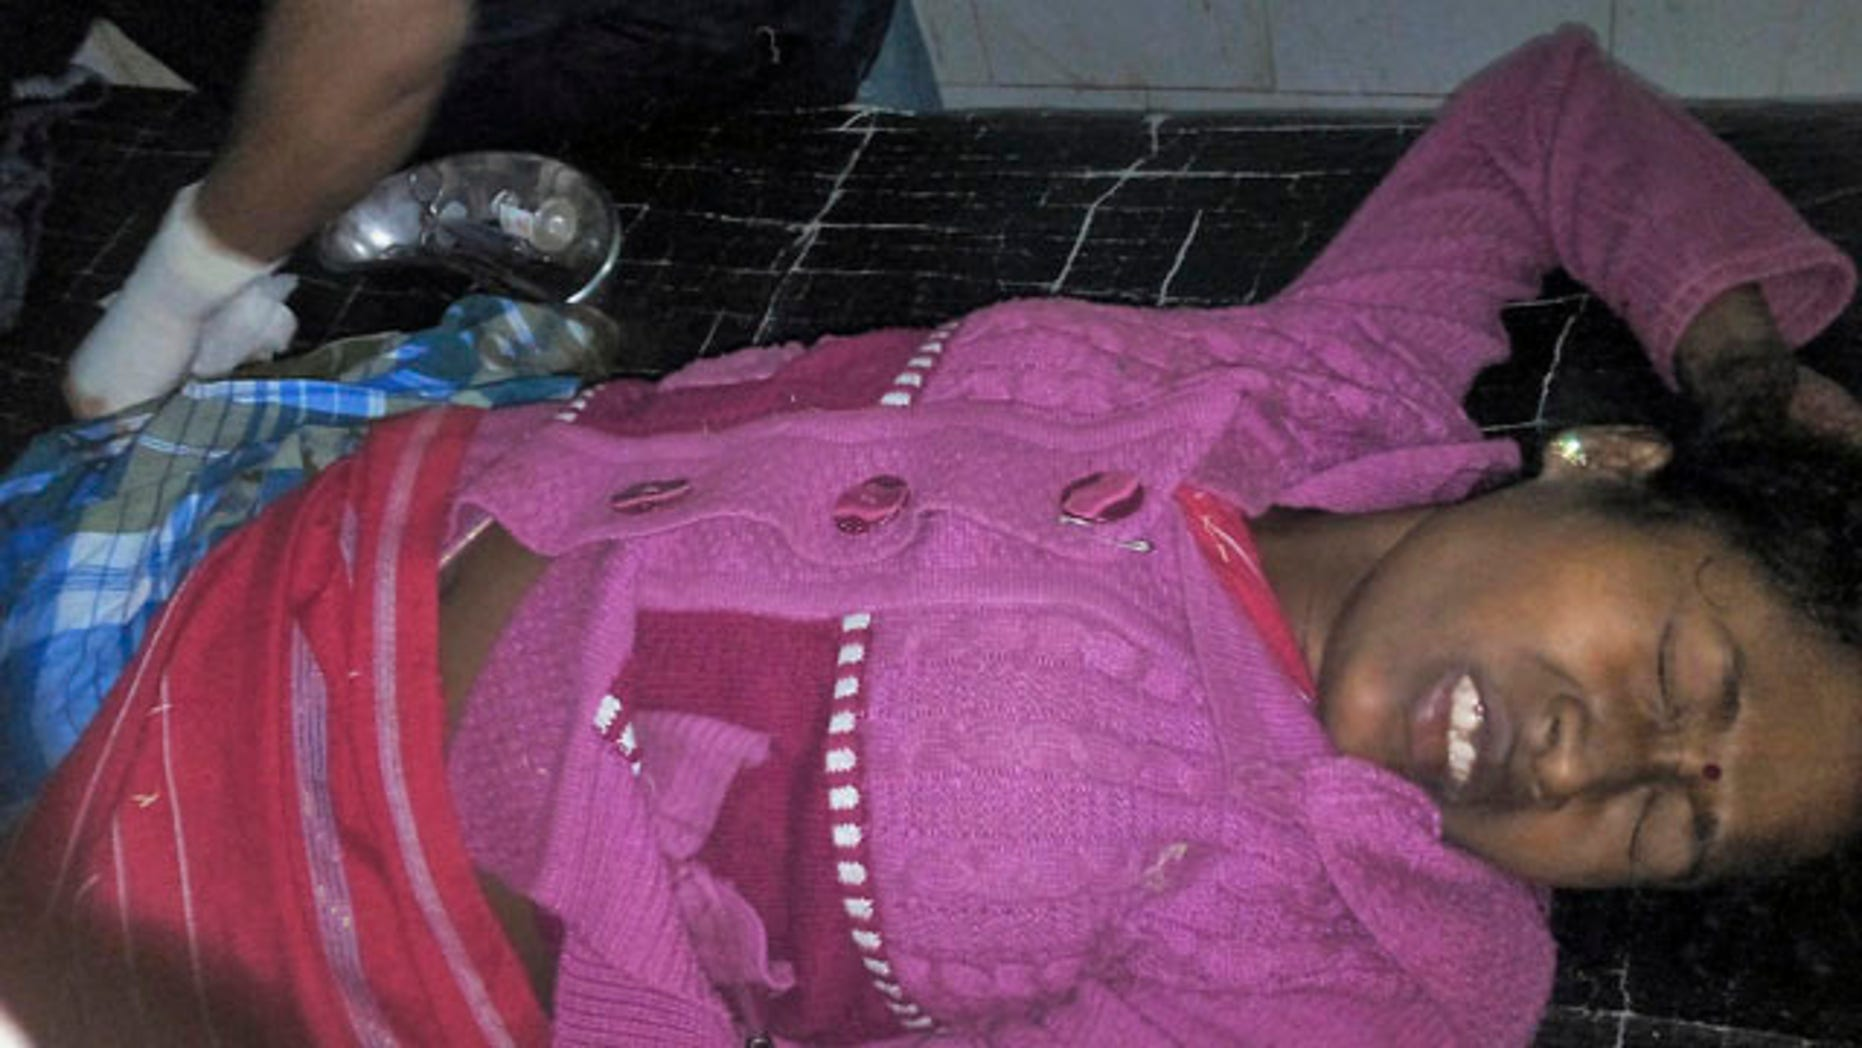 Dec. 23, 2014: An injured person is treated at a hospital in Kokrajhar district, in northeast state of Assam, India. (AP Photo/Press Trust of India)